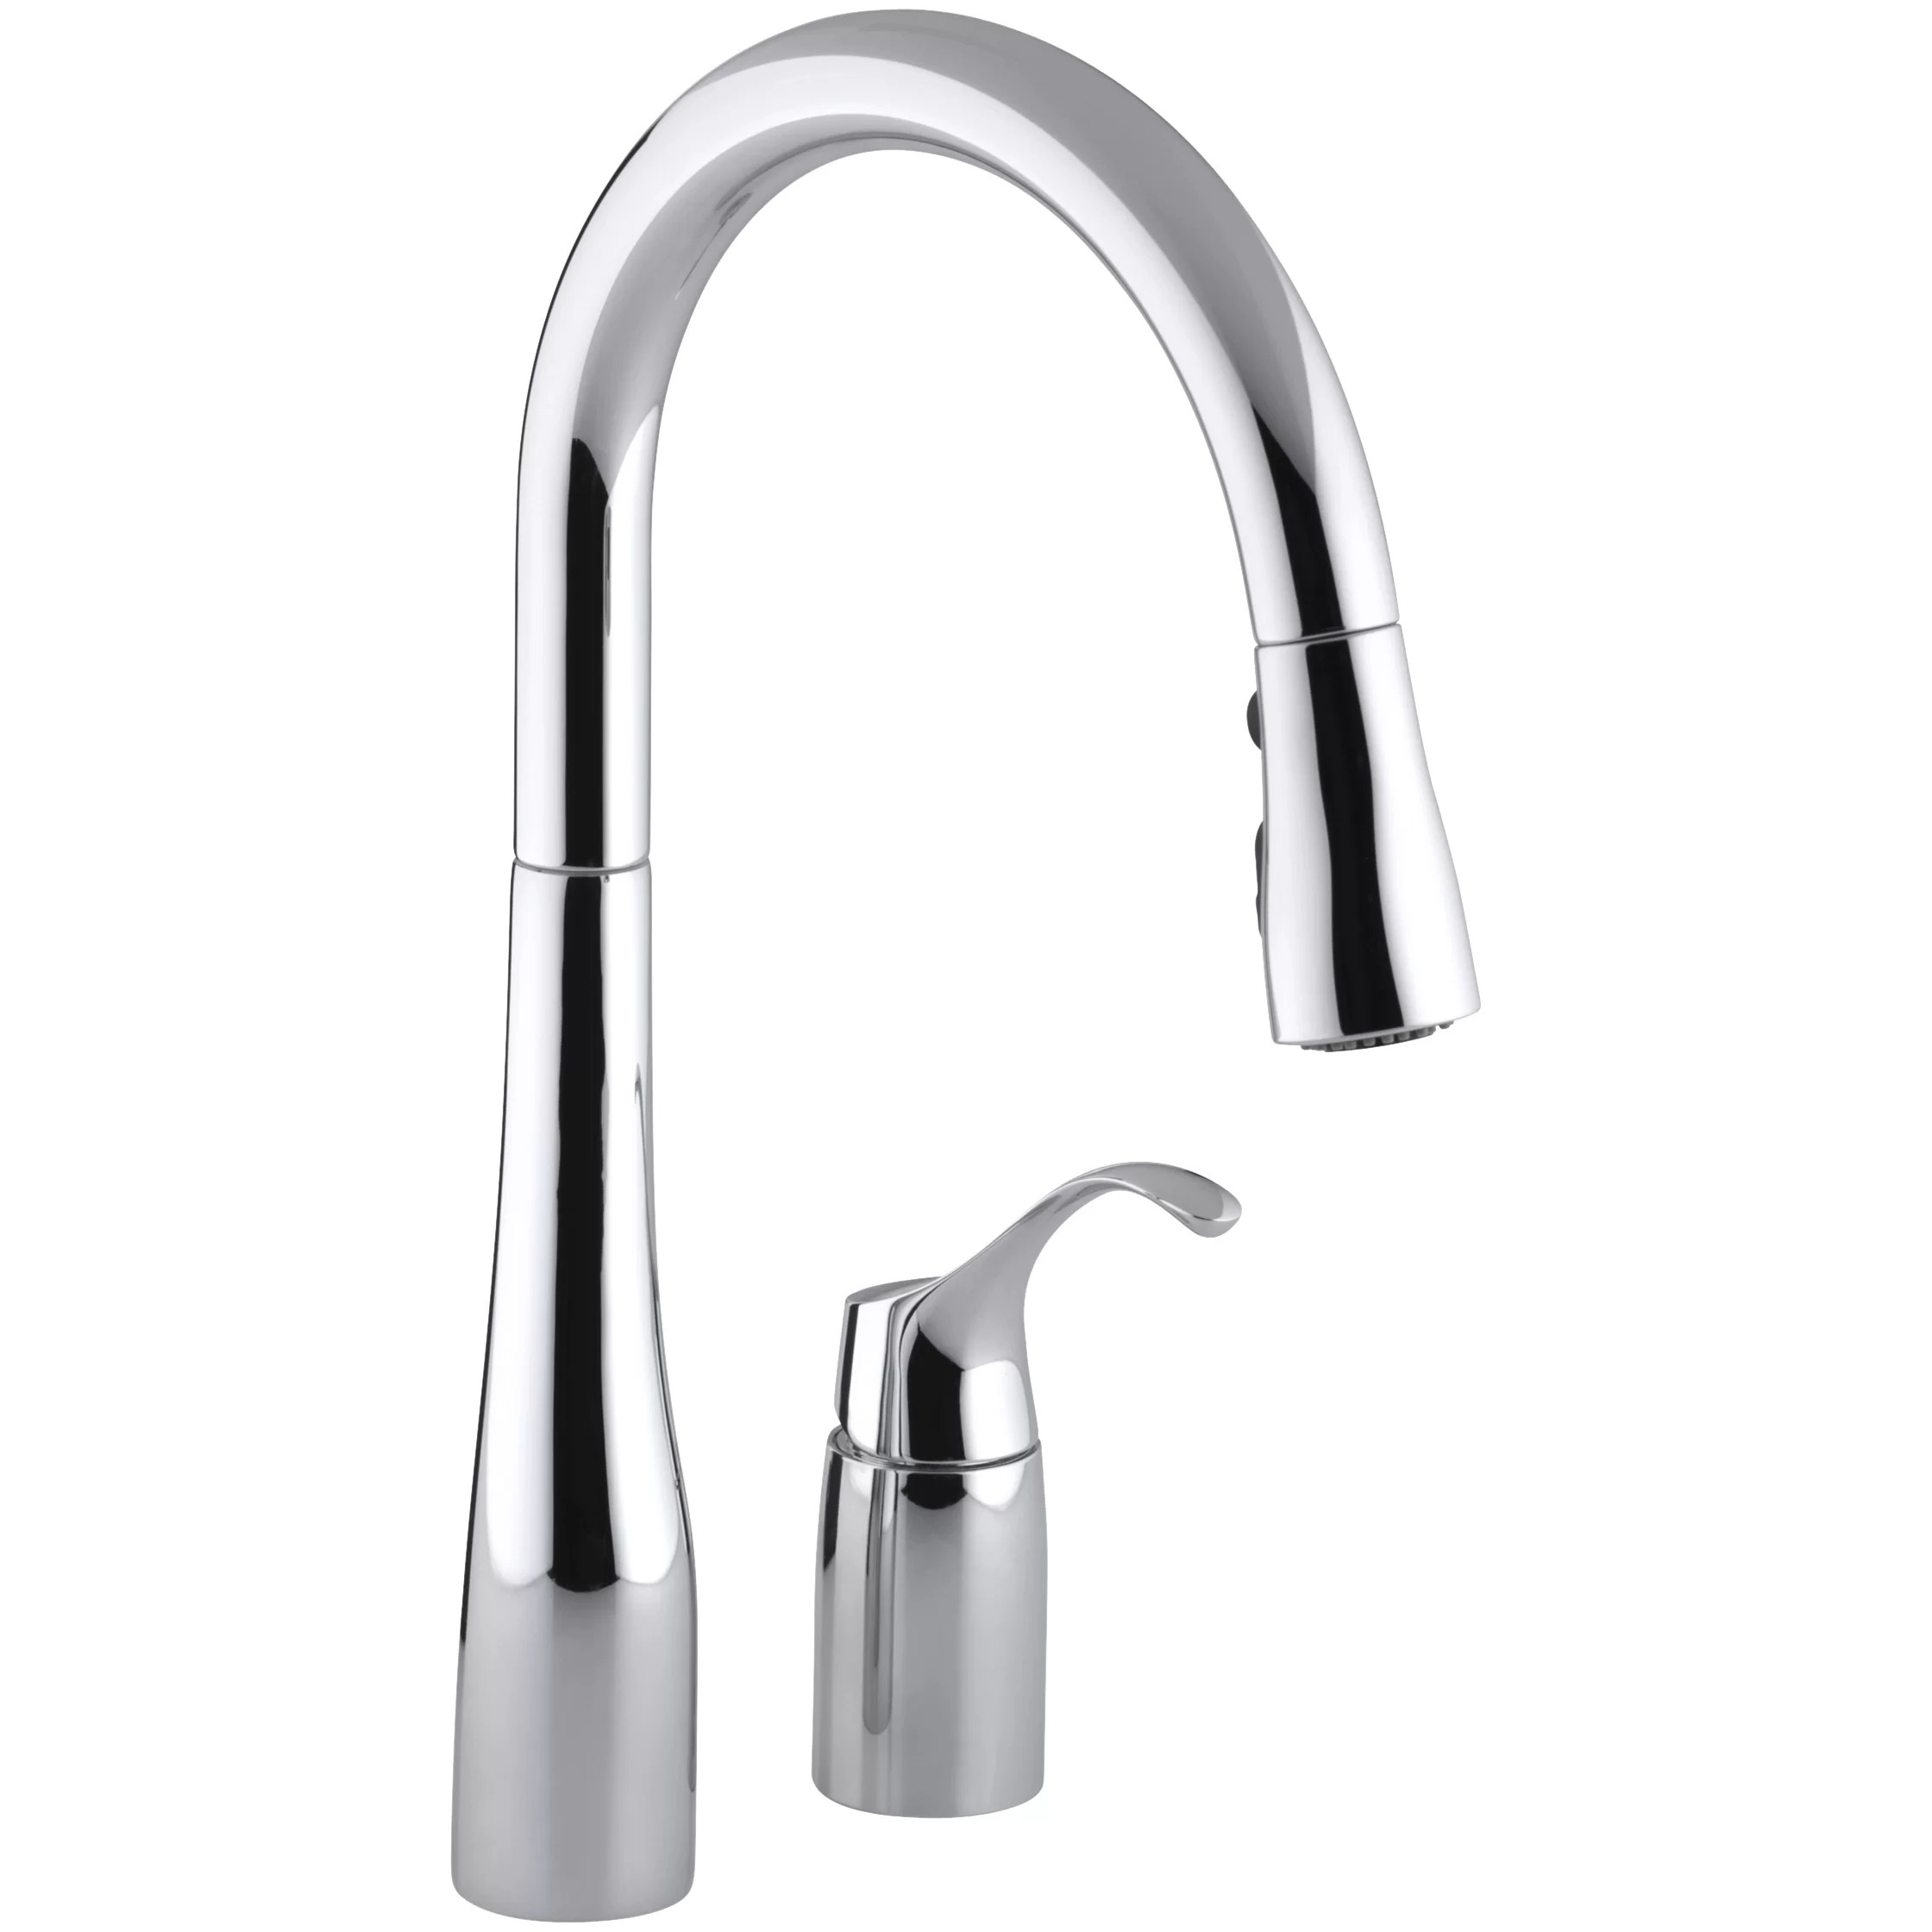 Kohler Simplice Two Hole Kitchen Sink Faucet with 16 1 8 Pull Down Swing Spout Docknetik Magnetic Docking System and A 3 Function Sprayhead Featuring The New Sweep Spray